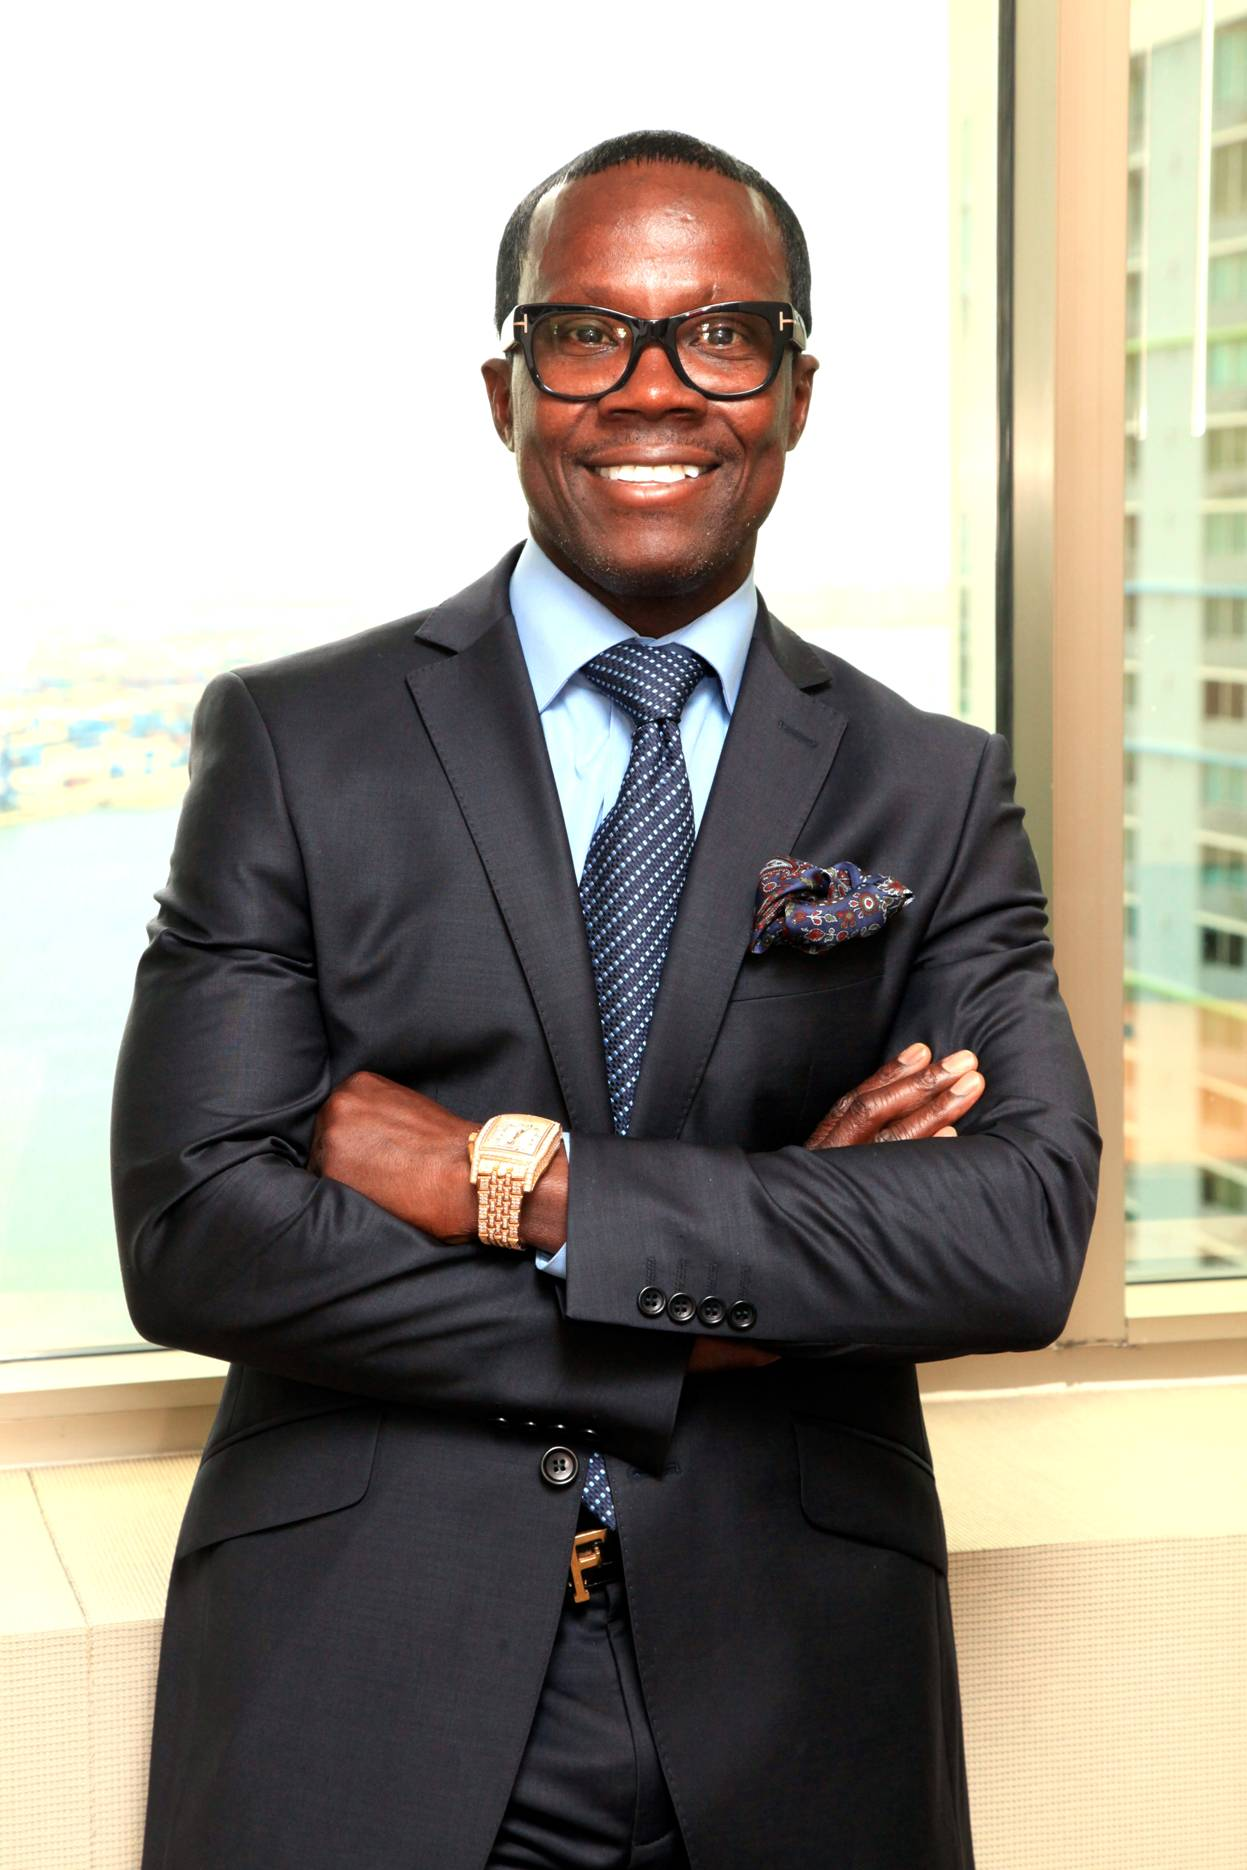 Activ Doctors Online Ceo Monssoh Named Business Person Of